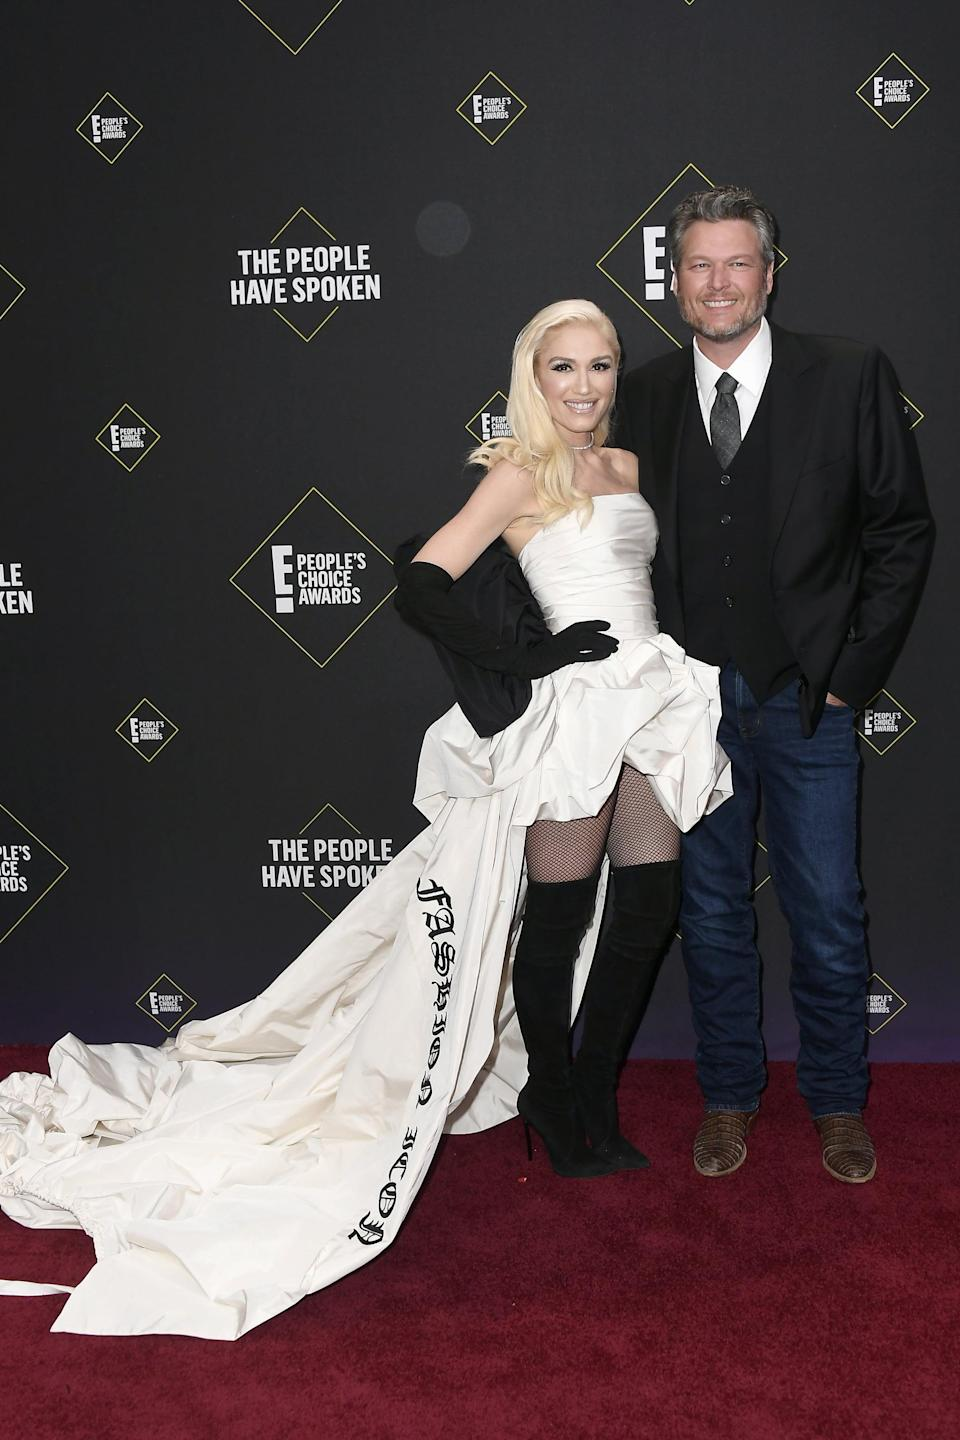 """<p>Gwen wearing <a href=""""https://www.popsugar.com/fashion/gwen-stefani-white-vera-wang-dress-at-peoples-choice-awards-46880476"""" class=""""link rapid-noclick-resp"""" rel=""""nofollow noopener"""" target=""""_blank"""" data-ylk=""""slk:a Vera Wang gown"""">a Vera Wang gown</a> with Casadei over-the-knee boots at the 2019 E! People's Choice Awards.</p>"""